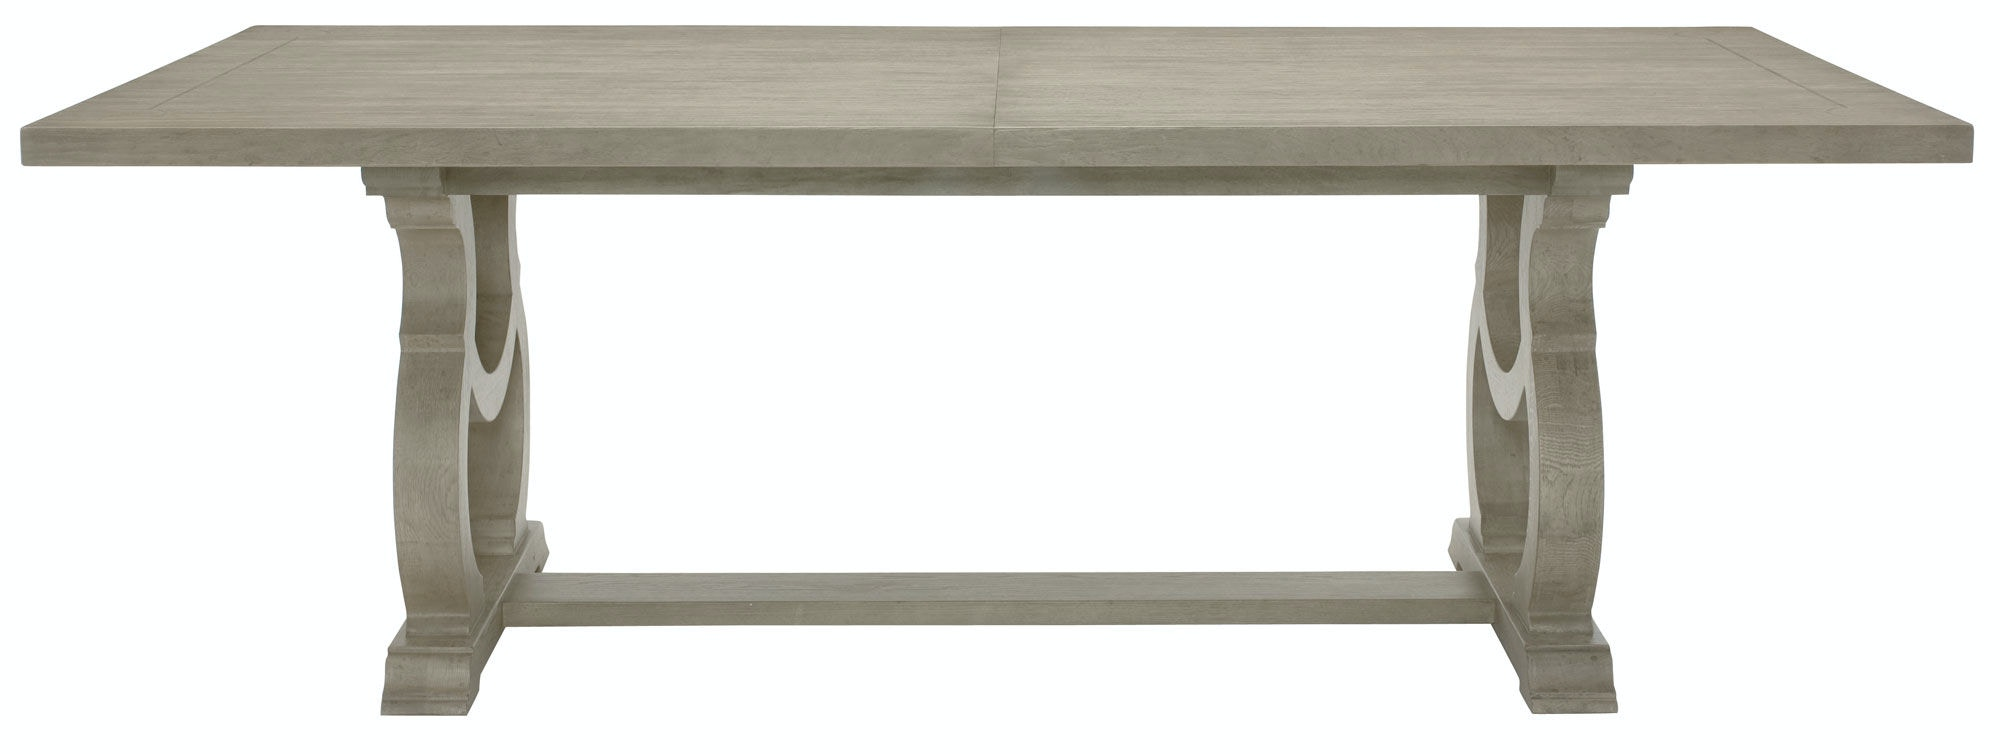 Bernhardt Marquesa Dining Table 359 226